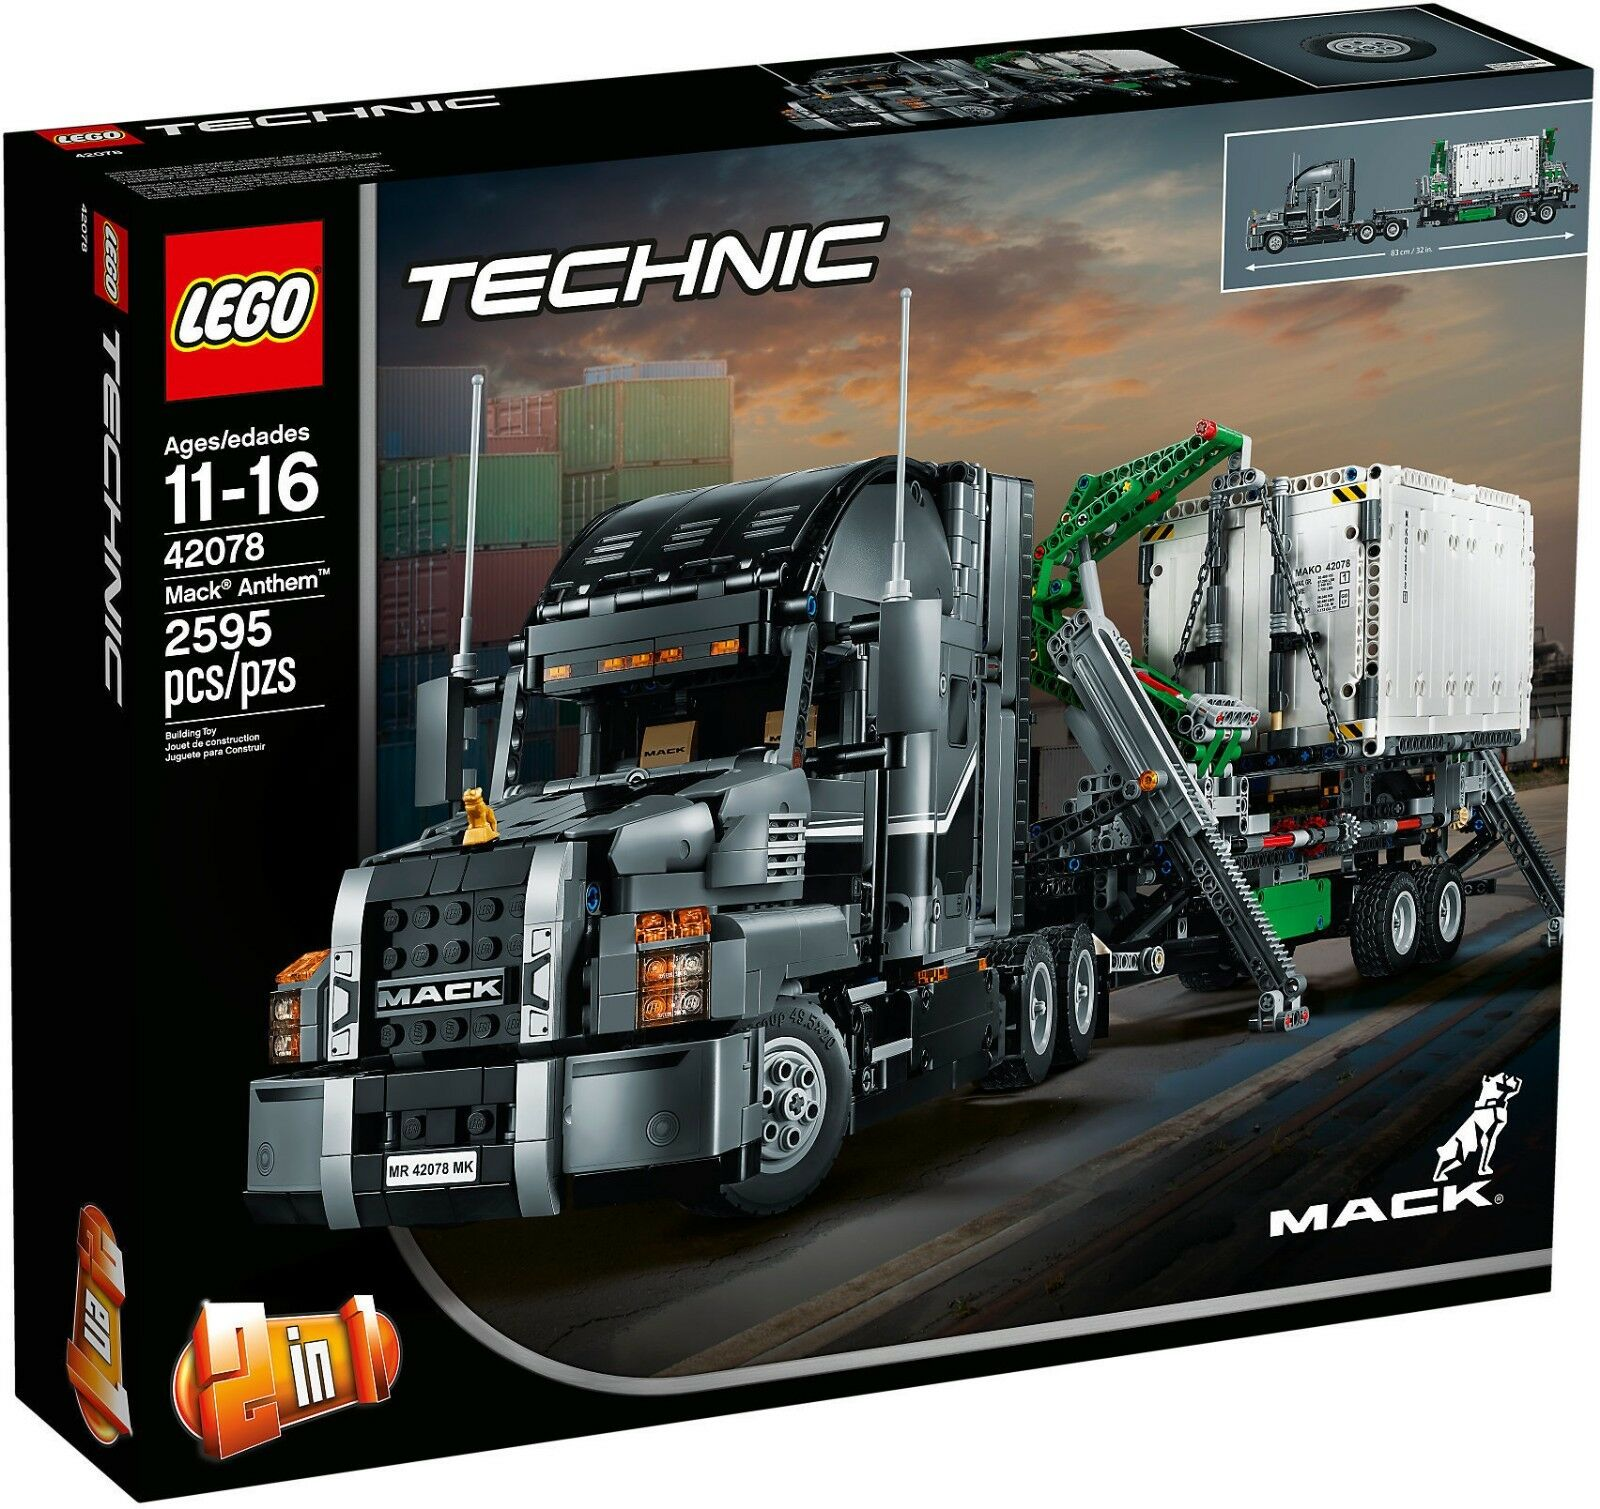 LEGO Technic 42078 - Mack Anthem NUOVO